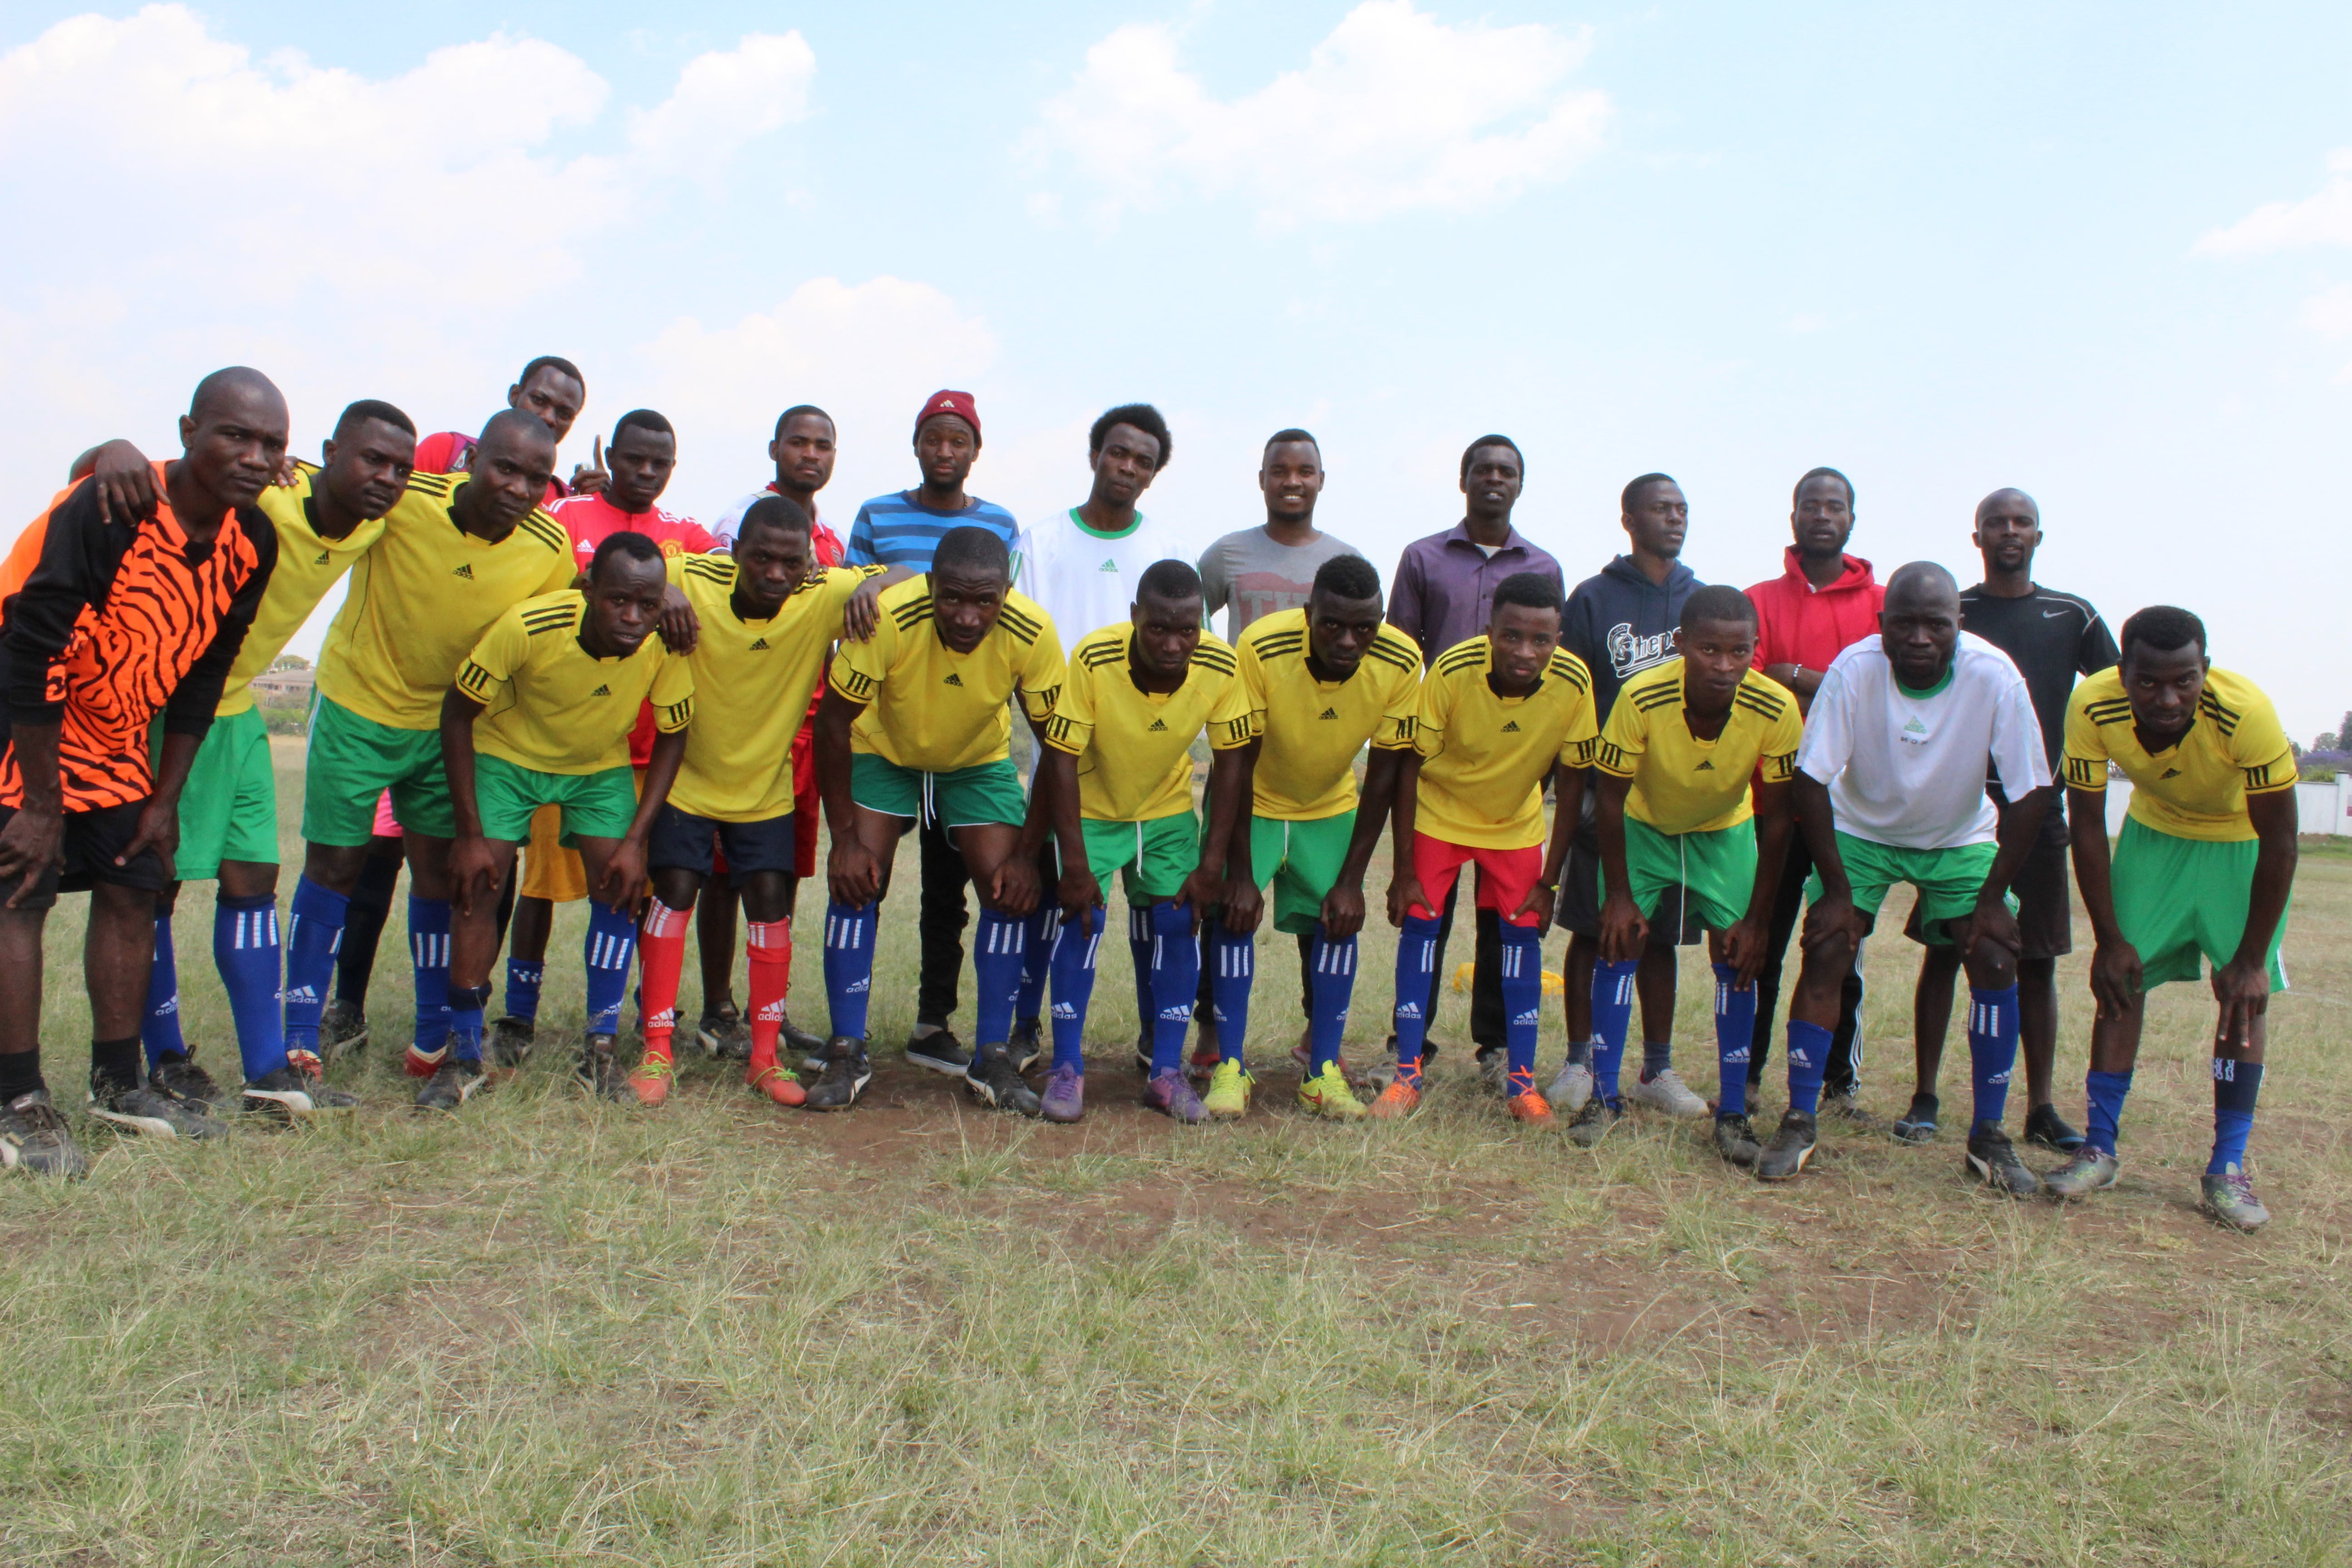 BREAKING NEWS: MAFCO TO HOST MALAWI INTER-VARSITY SPORTS GAMES